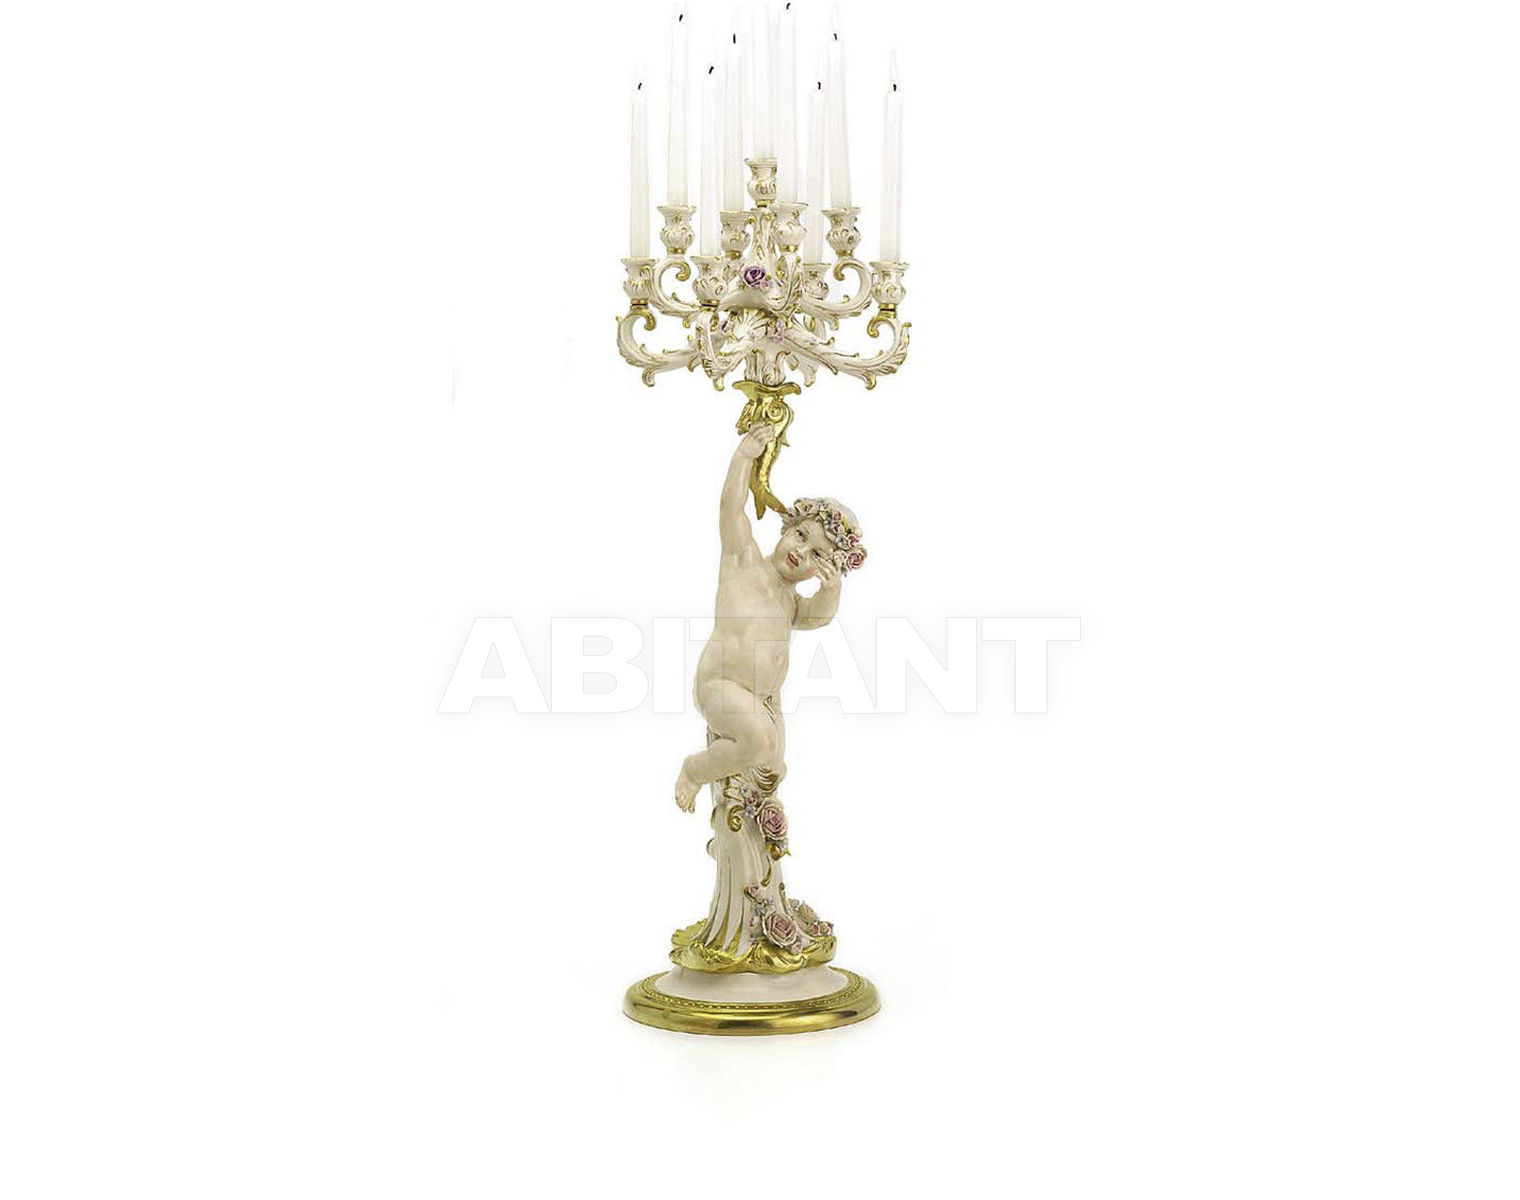 Купить Подсвечник ANGEL WITH 9 BRANCHED CANDELABRA Villari Capodimonte T.01945-002 2